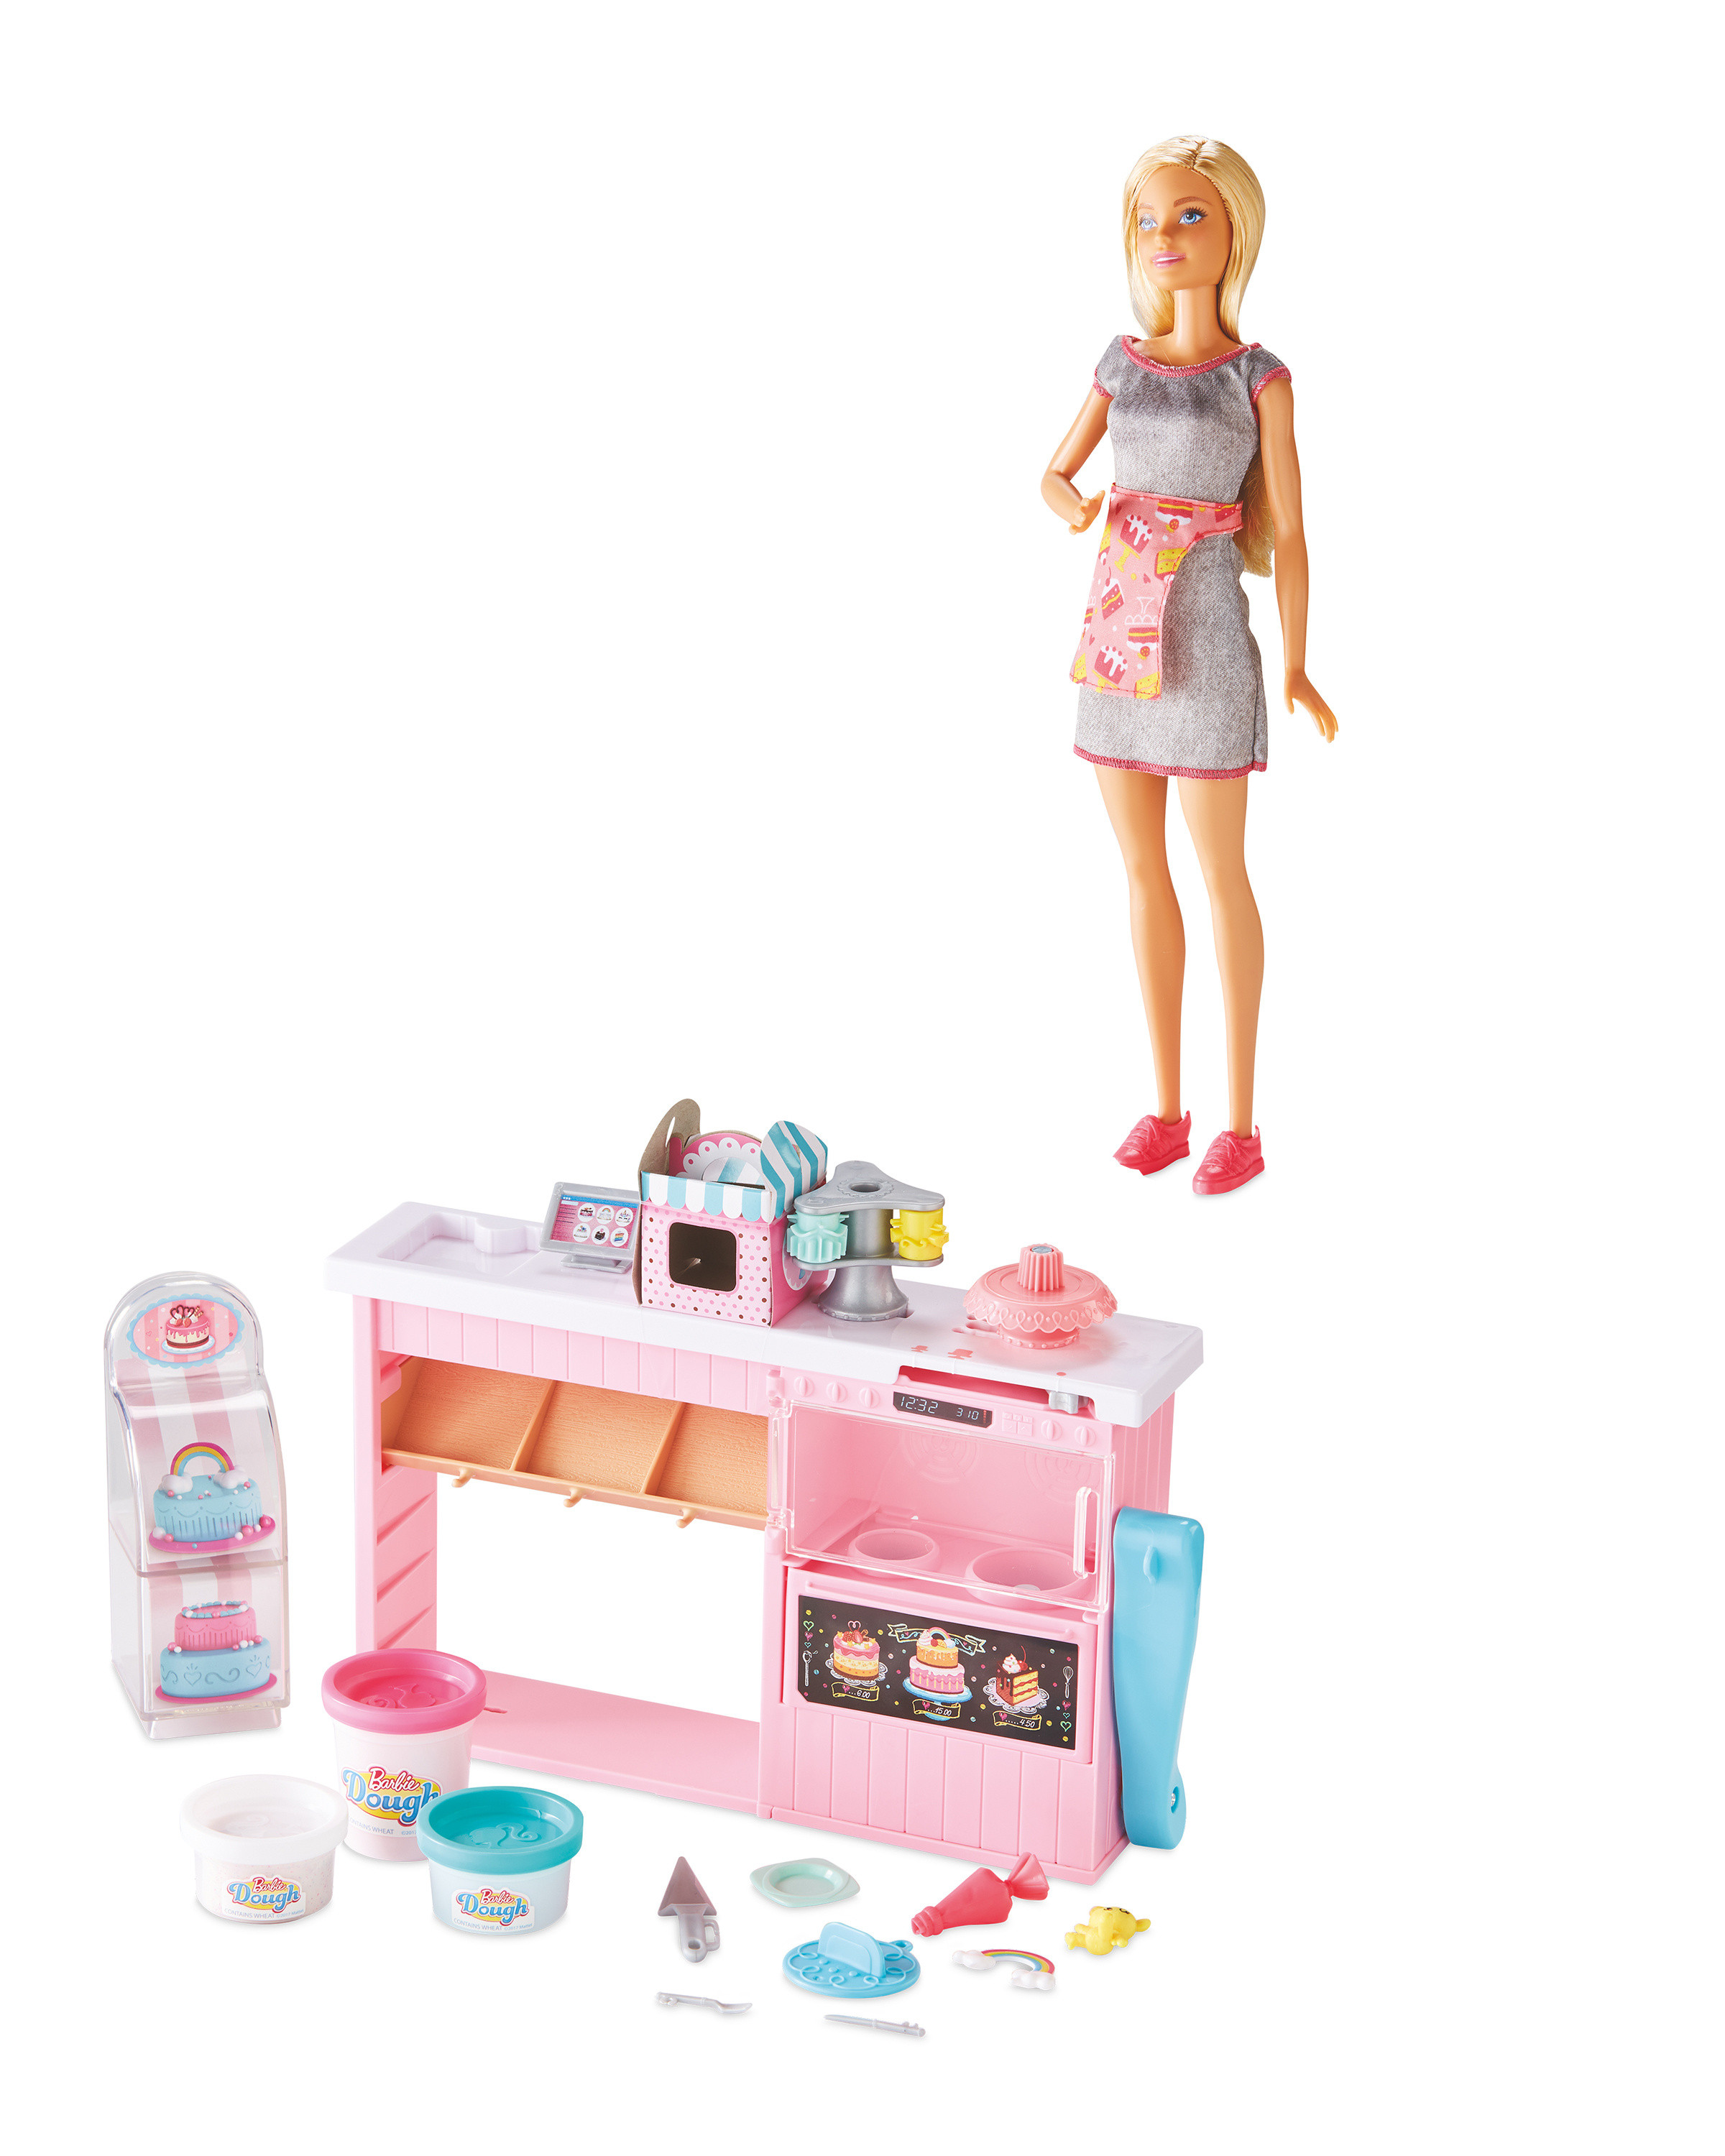 Barbie Cake Decorating Play Set